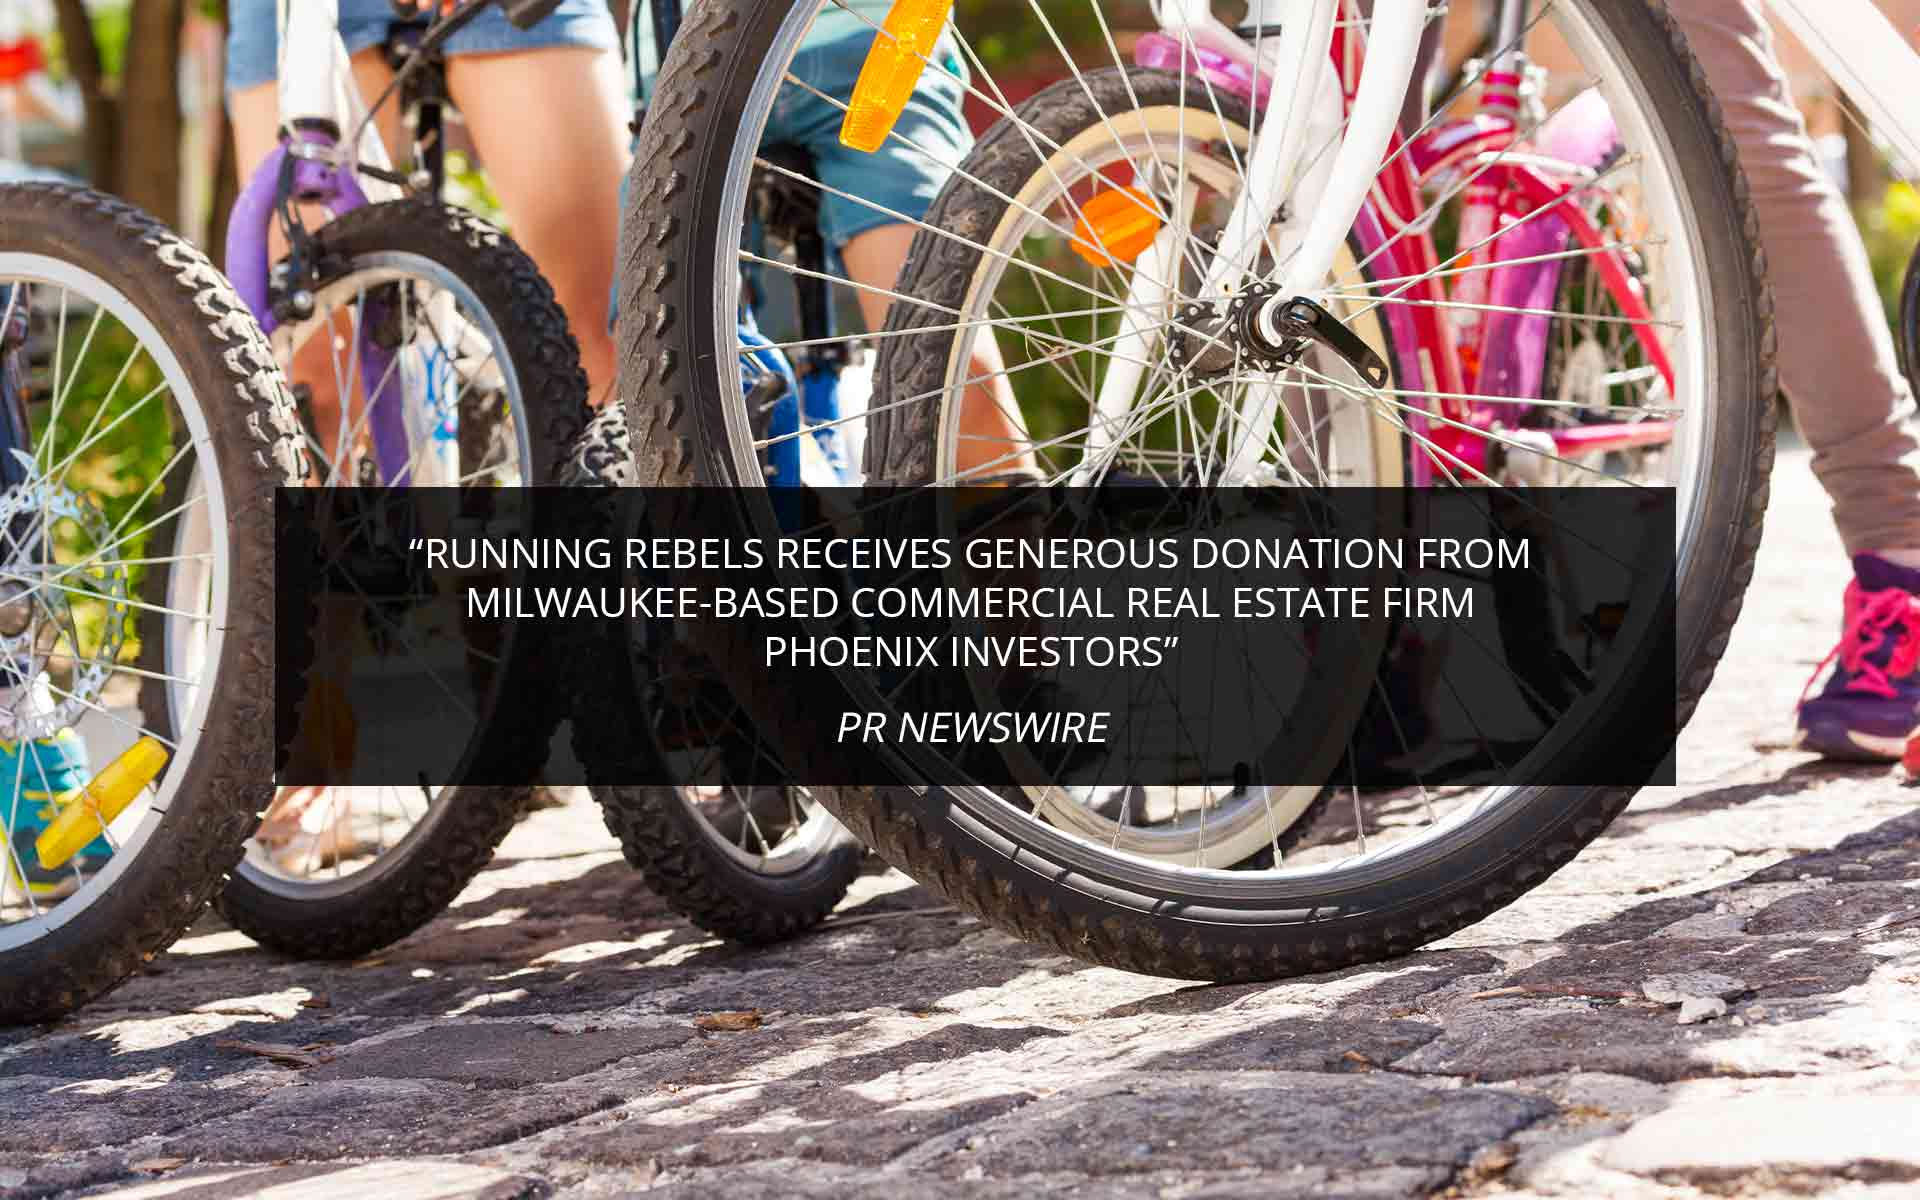 Running Rebels Receives Generous Donation From Milwaukee-Based Commercial Real Estate Firm Phoenix Investors